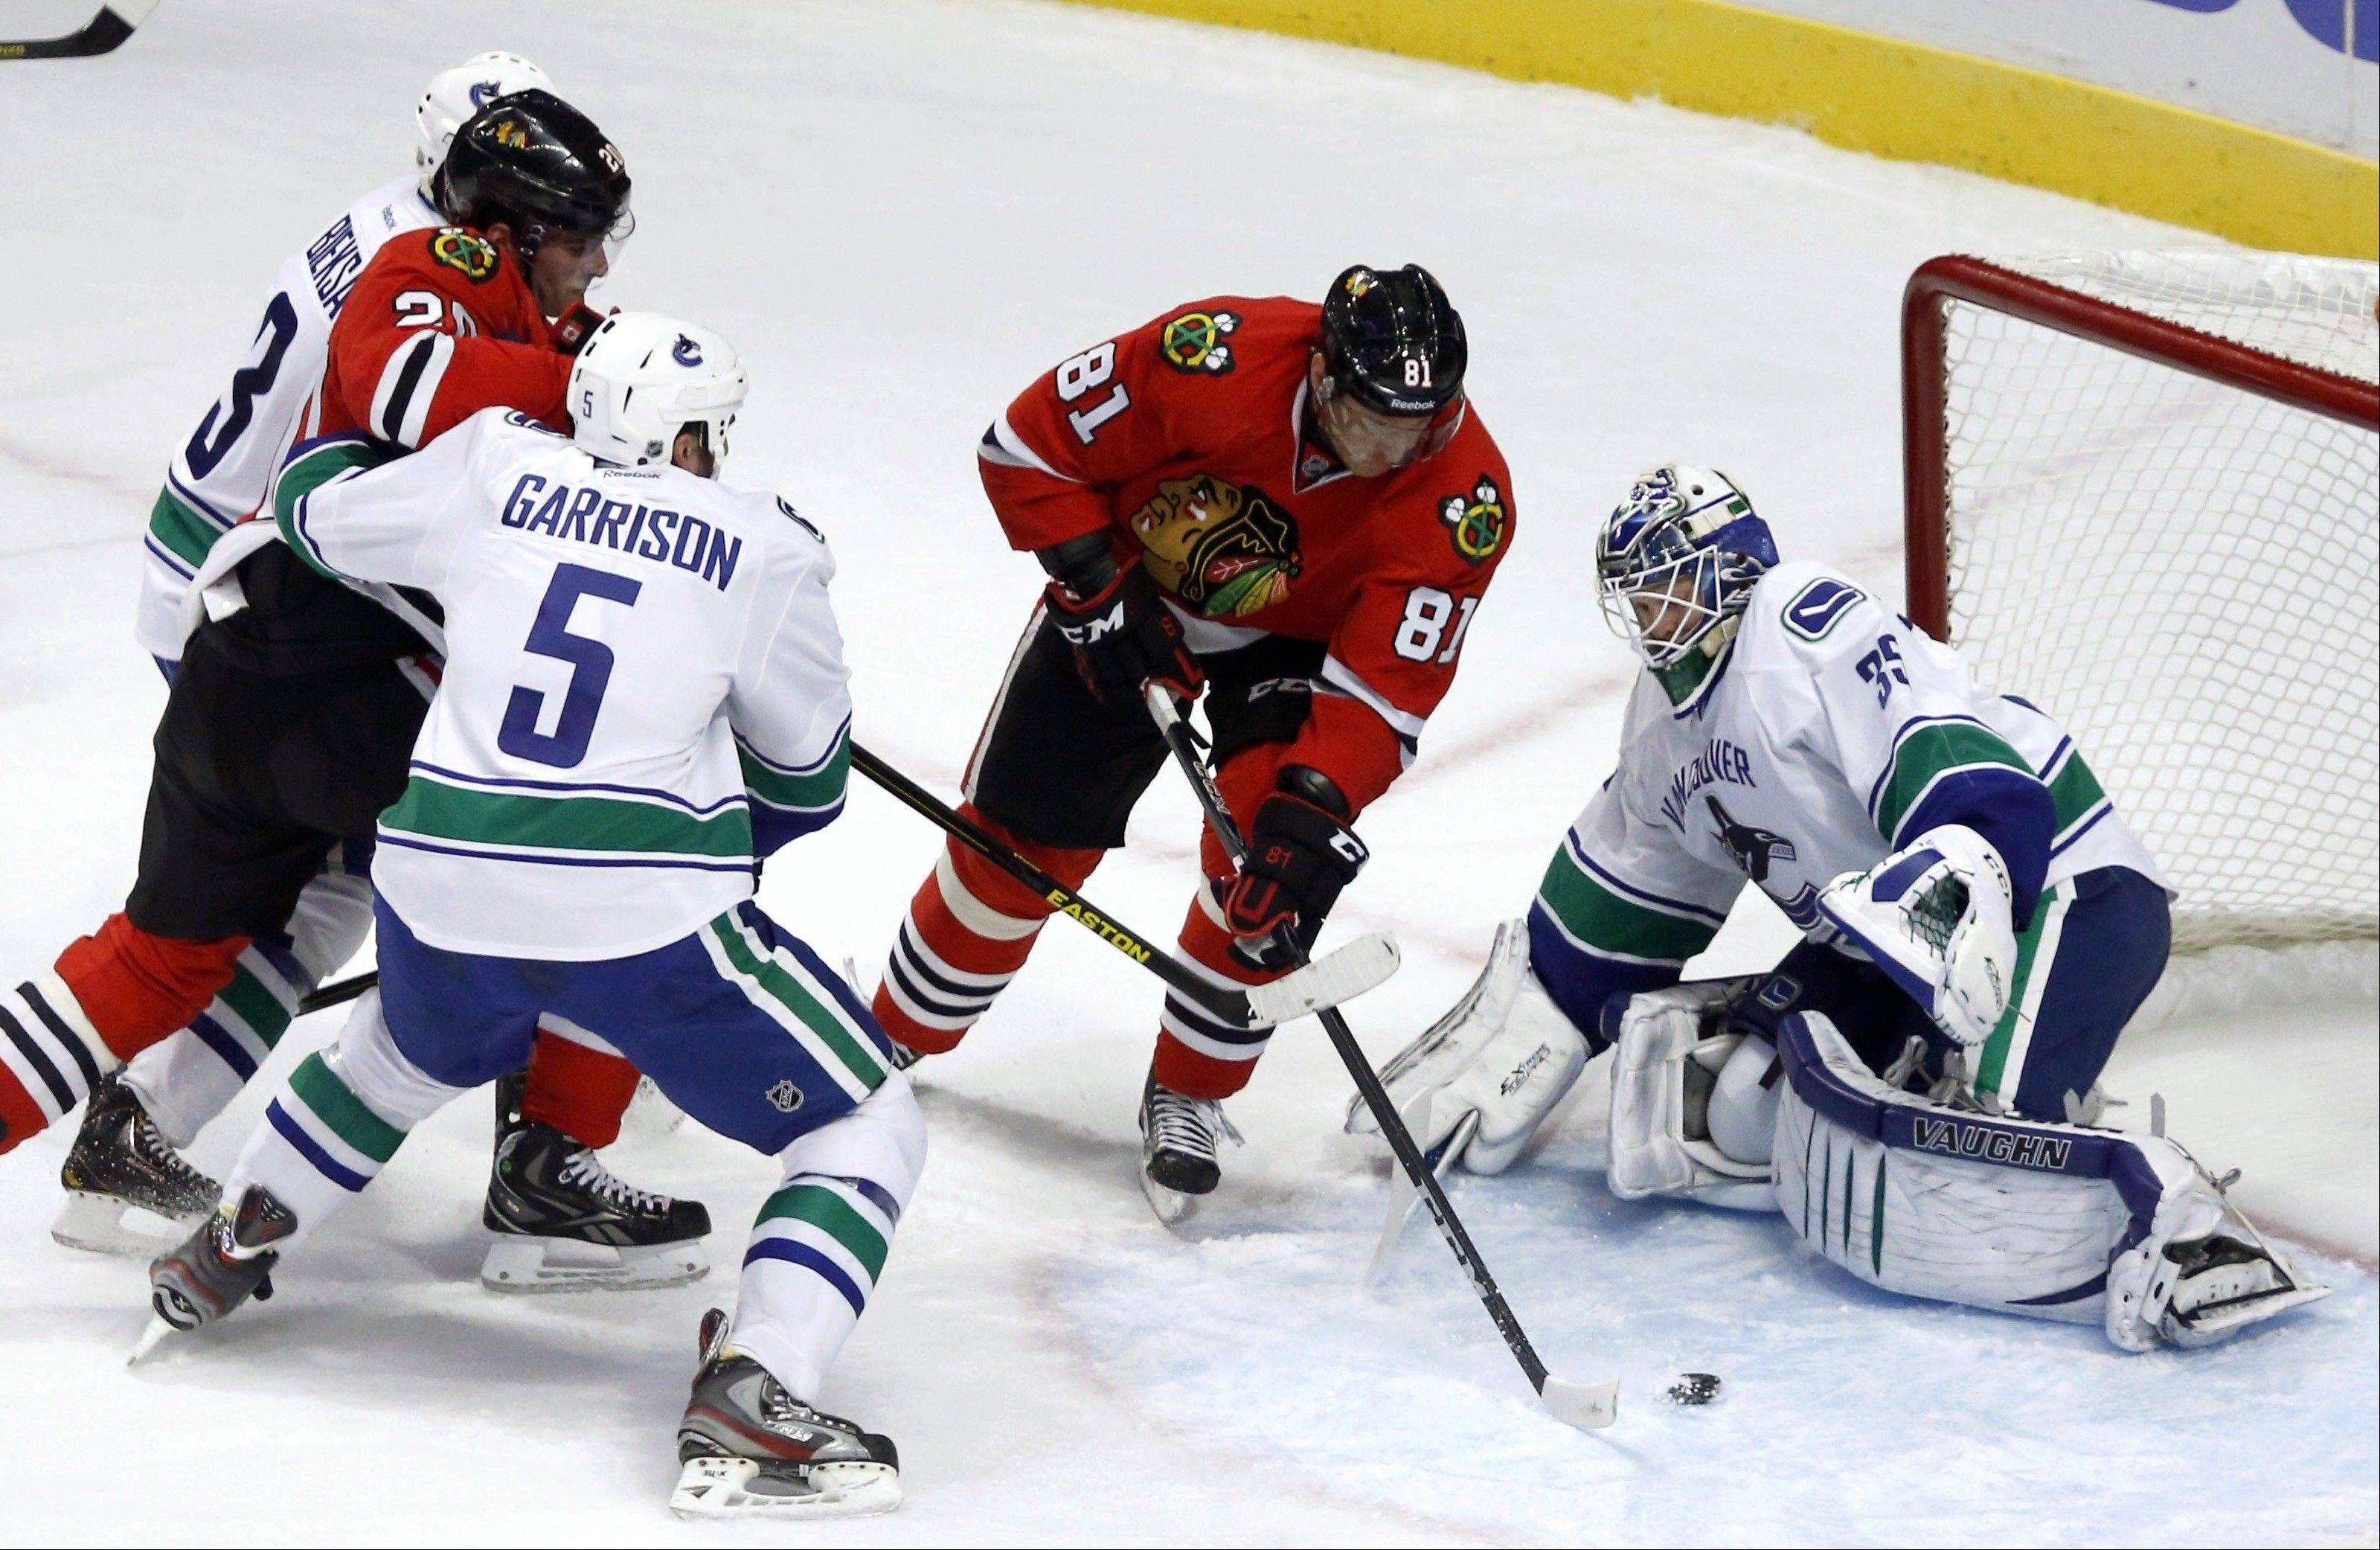 Chicago Blackhawks right wing Marian Hossa splits the defense of Vancouver Canucks' Kevin Bieksa, Jason Garrison and goalie Cory Schneider to score his second goal in the second period .